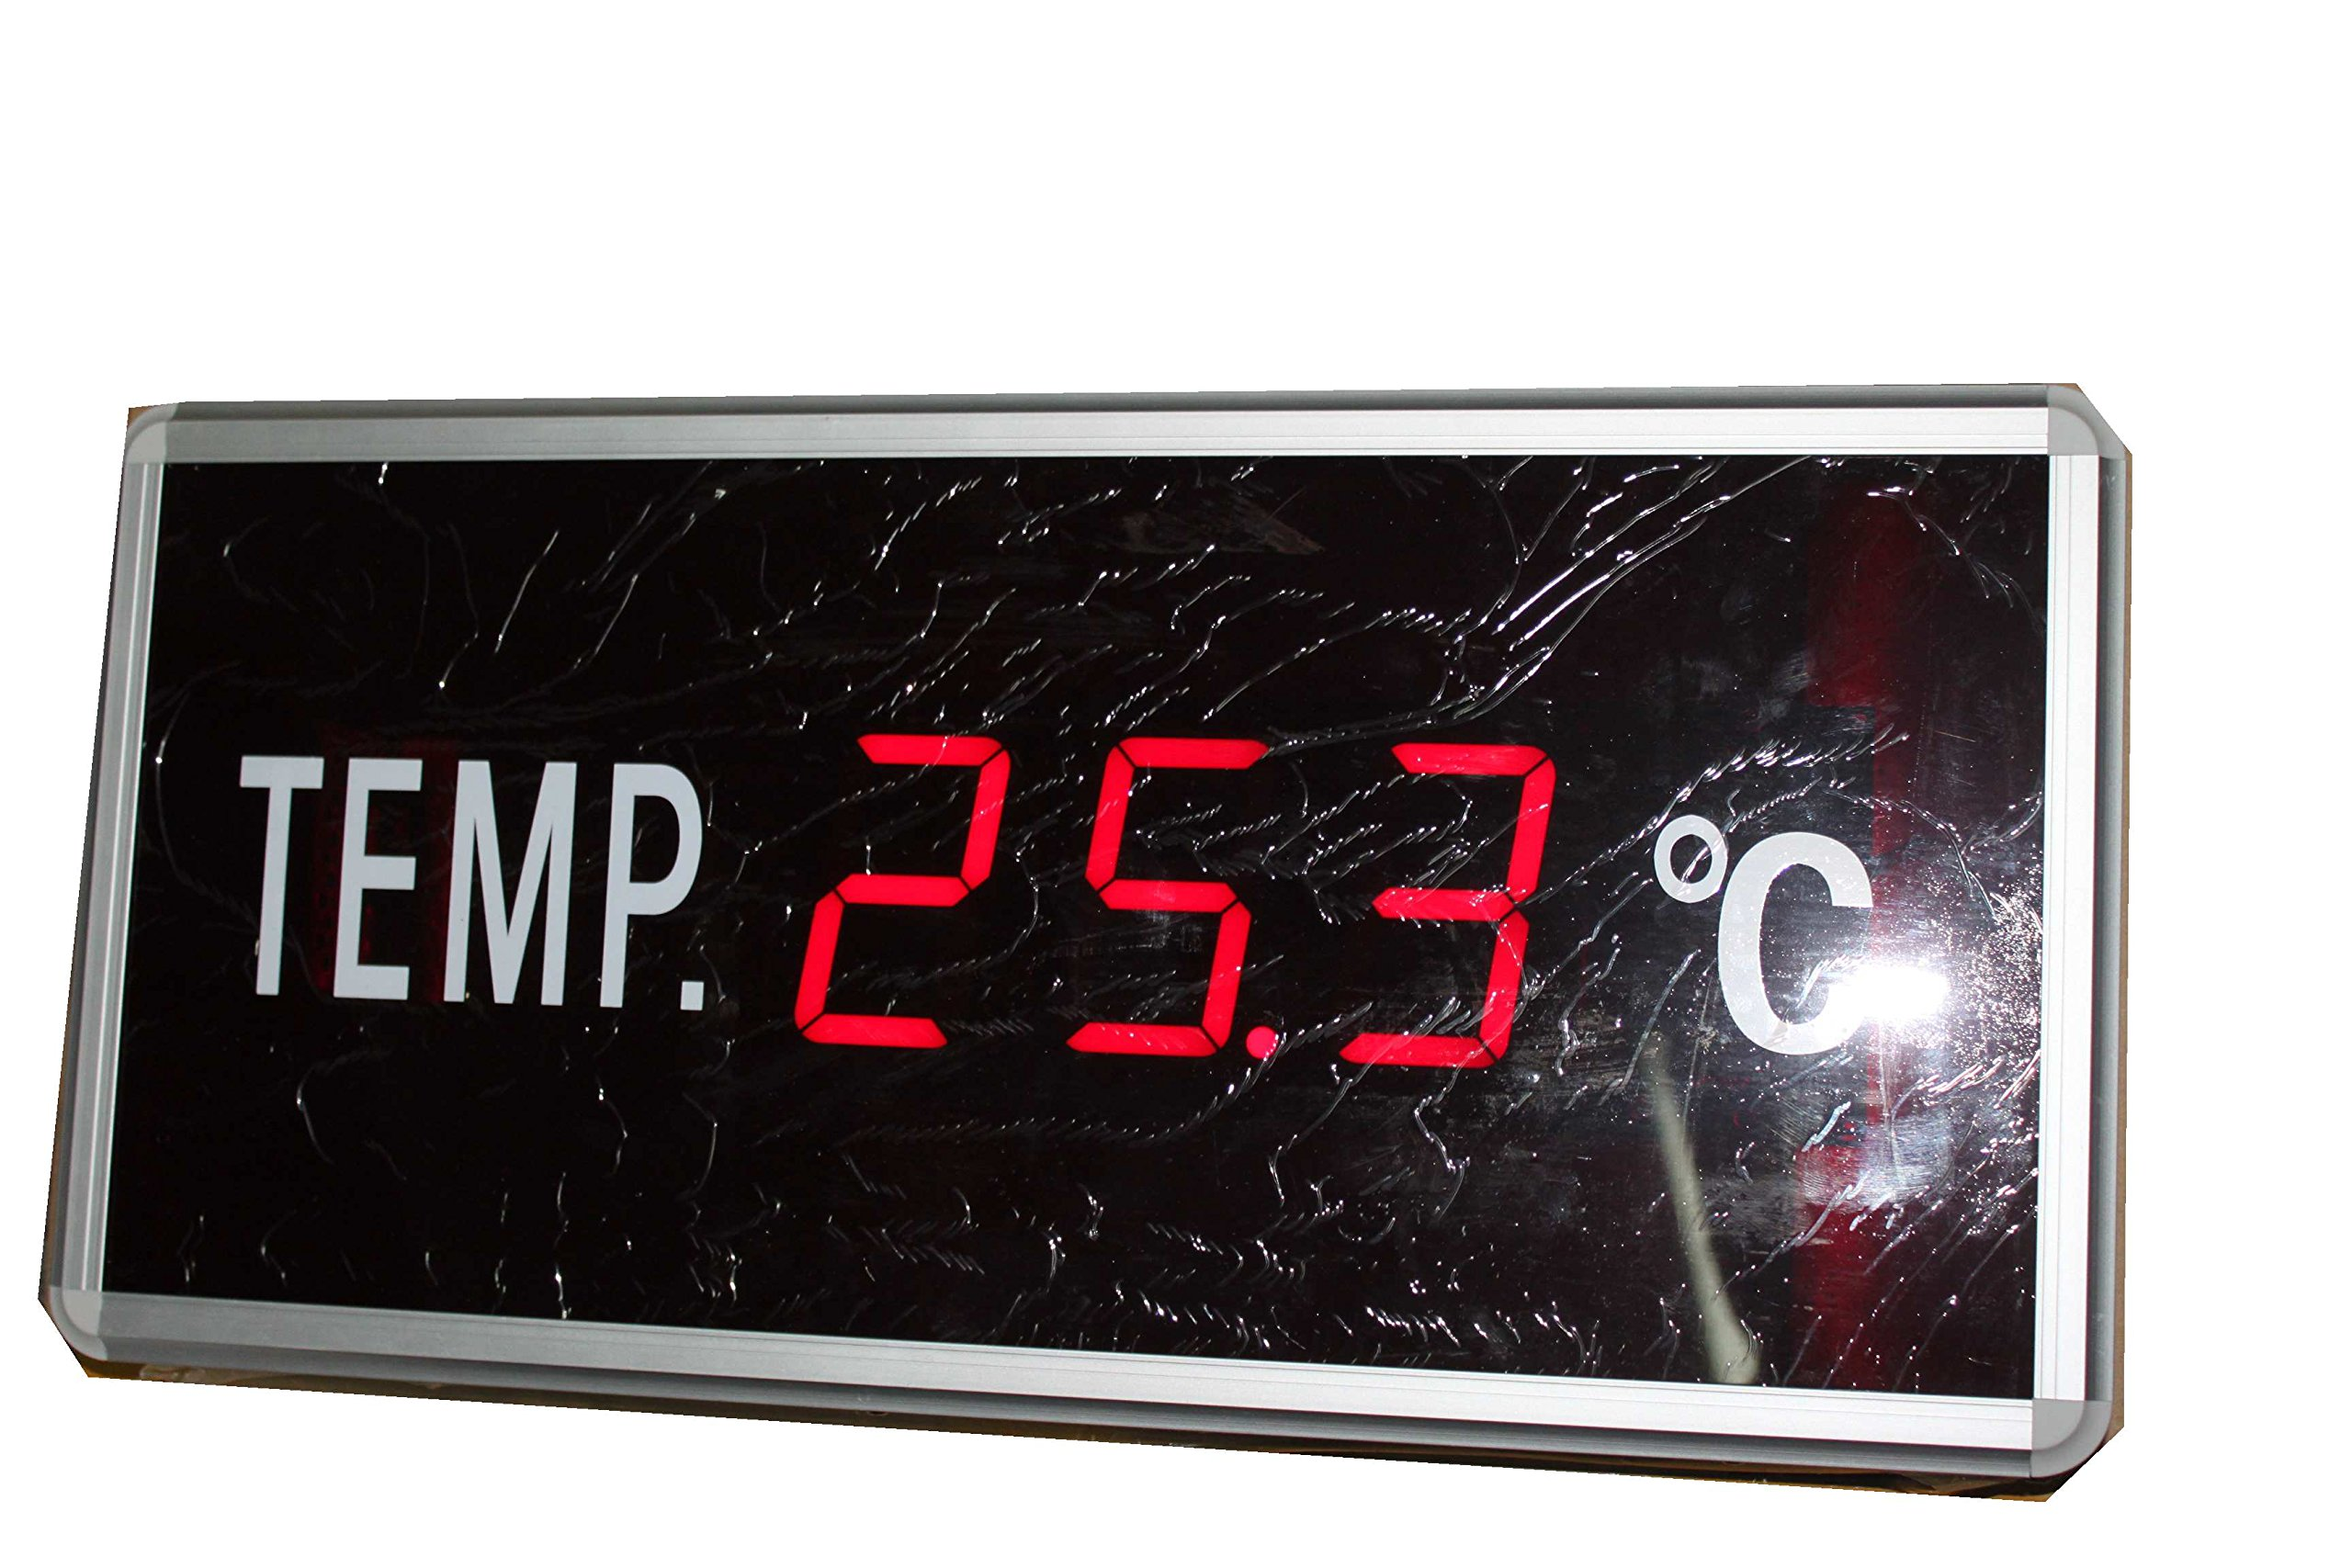 AZOOU LED Signs Display Temperature by AZOOU